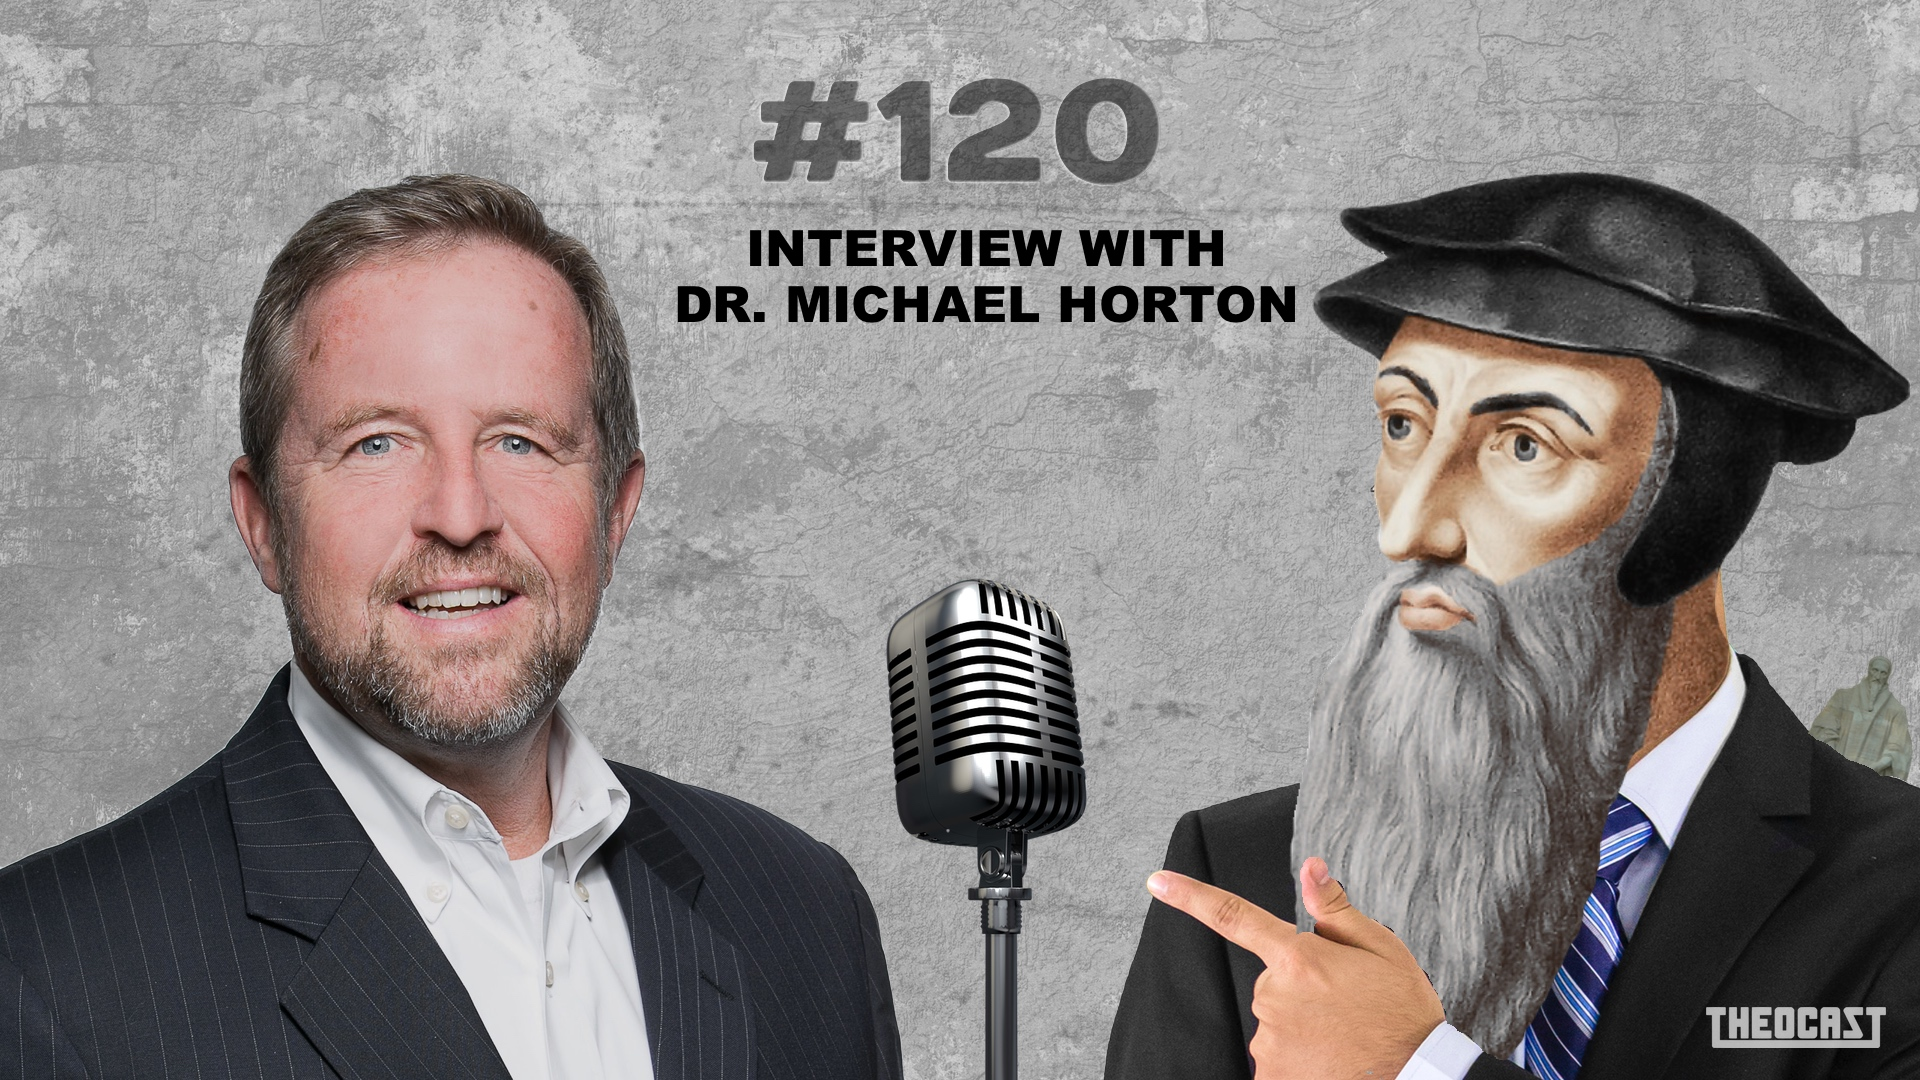 #120 Interview With Dr. Michael Horton